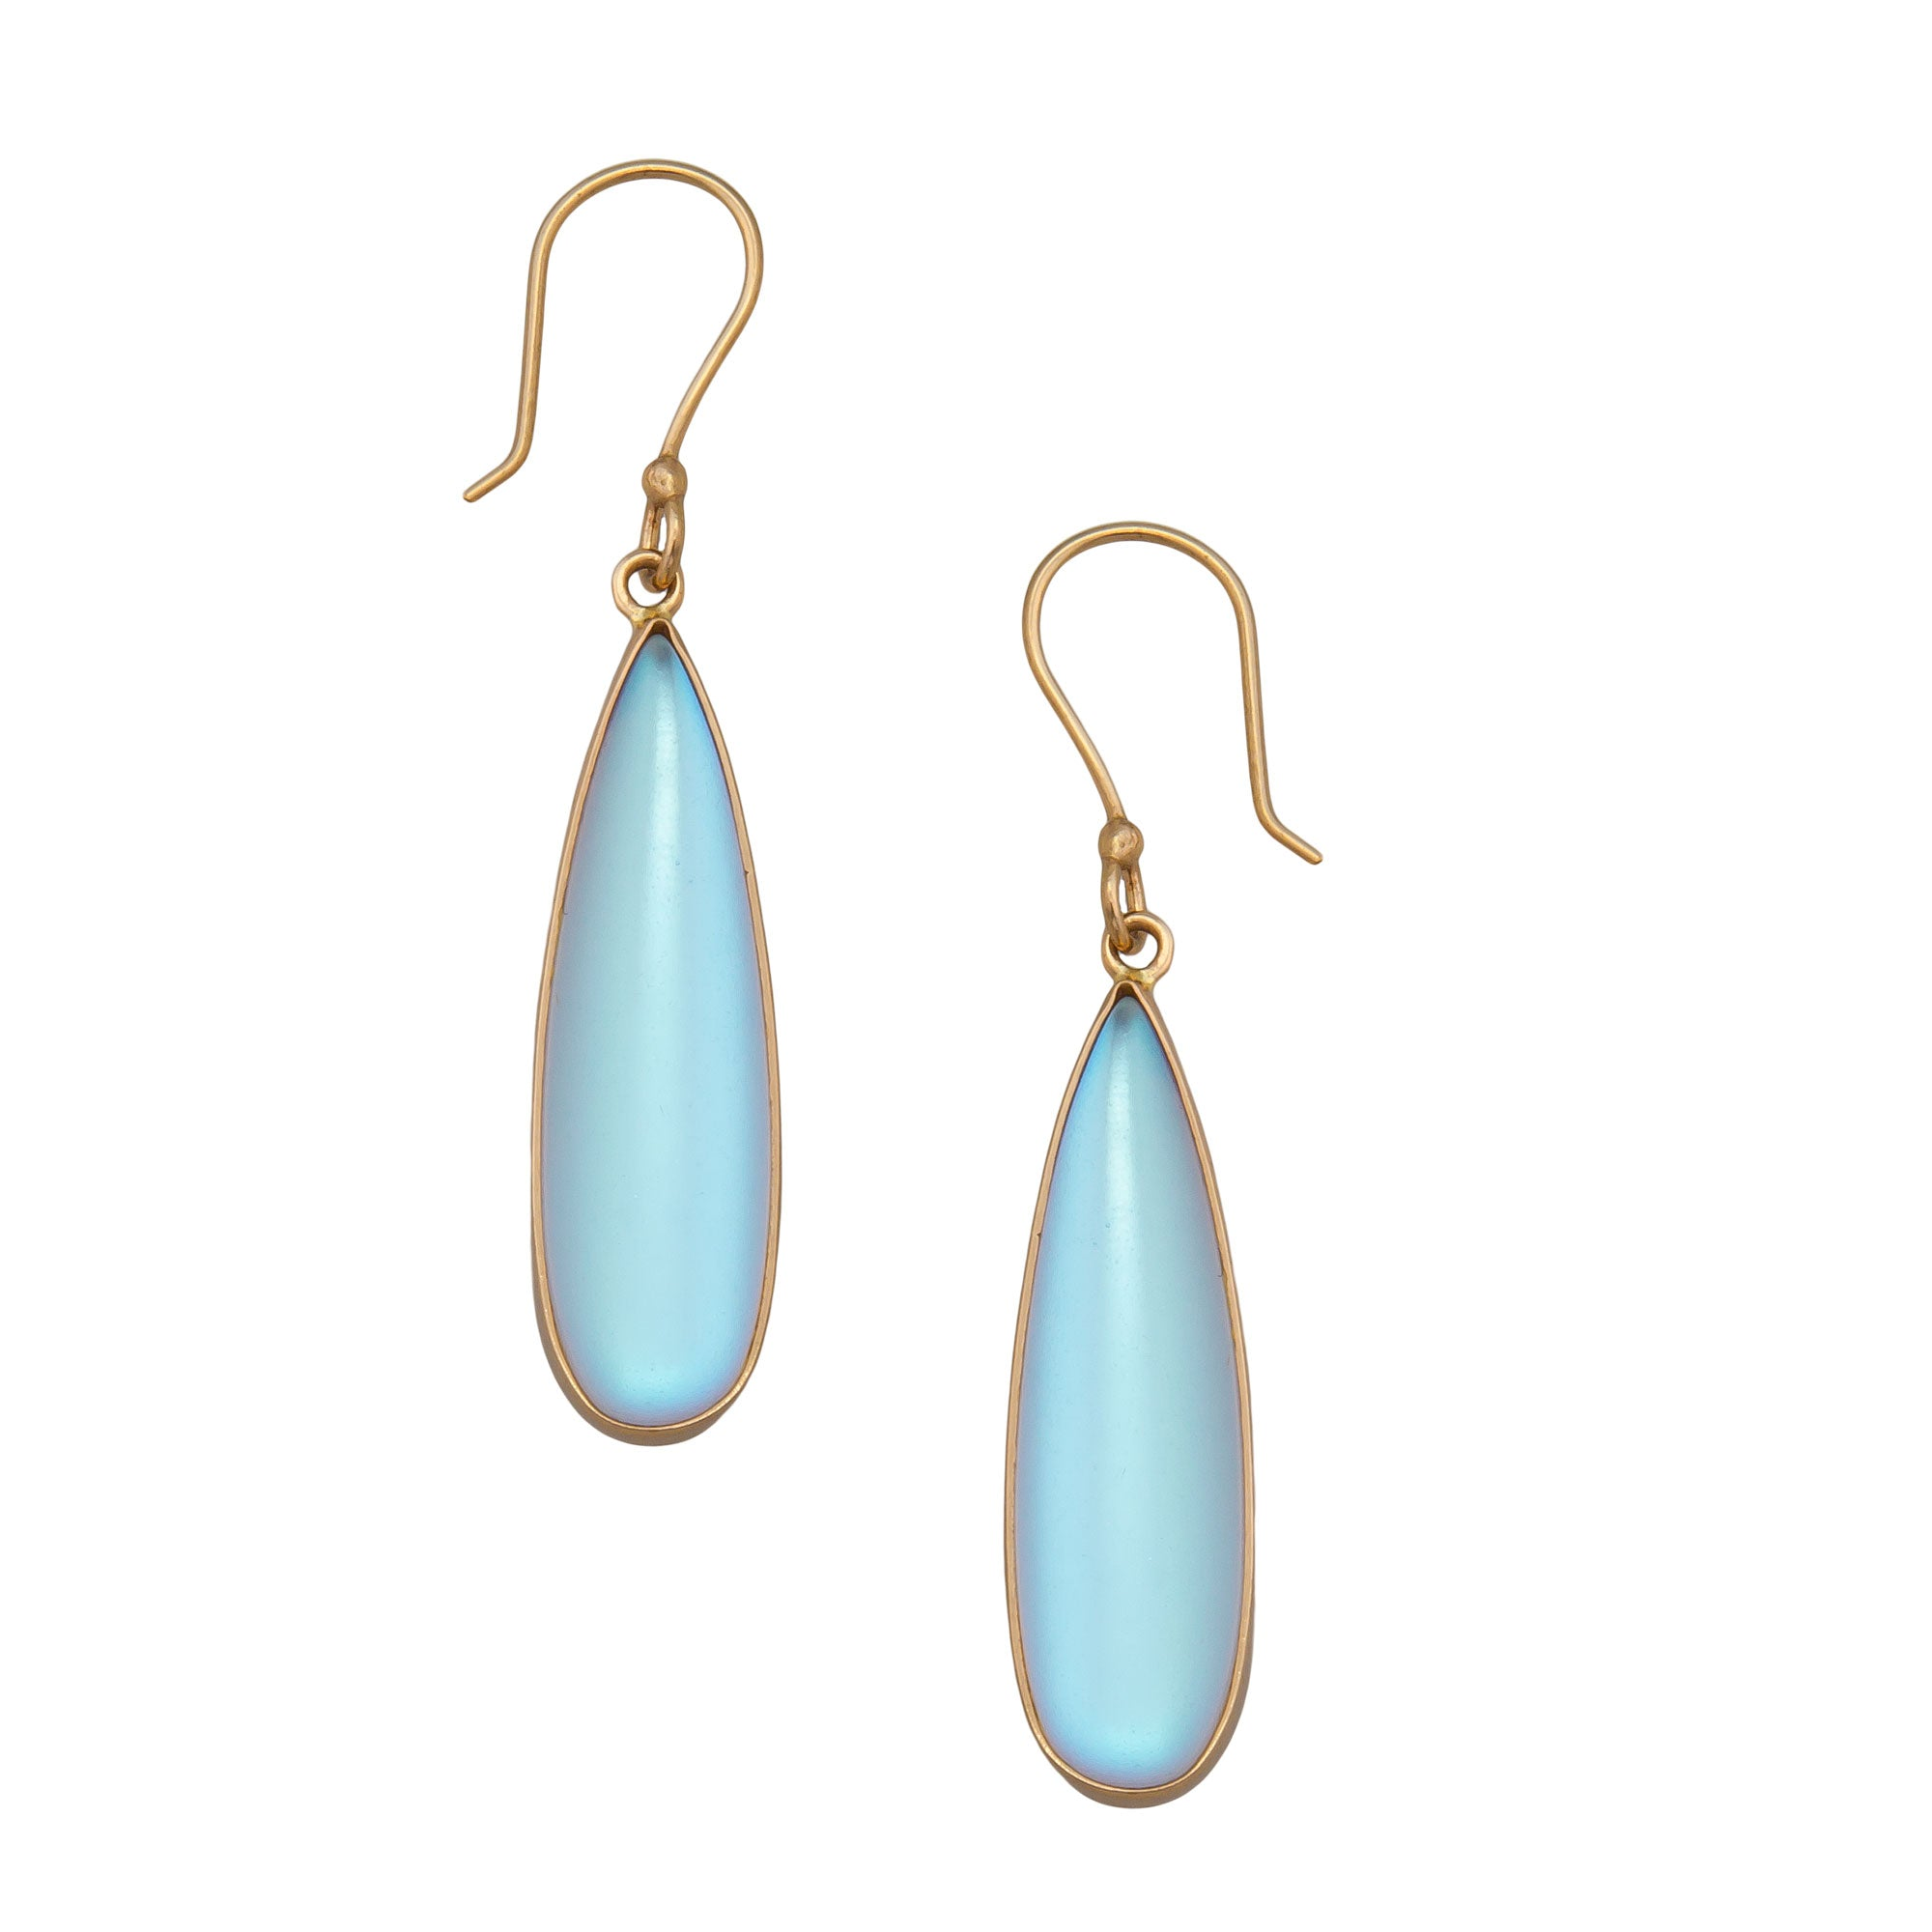 Alchemia Luminite Teardrop Earrings | Charles Albert Jewelry